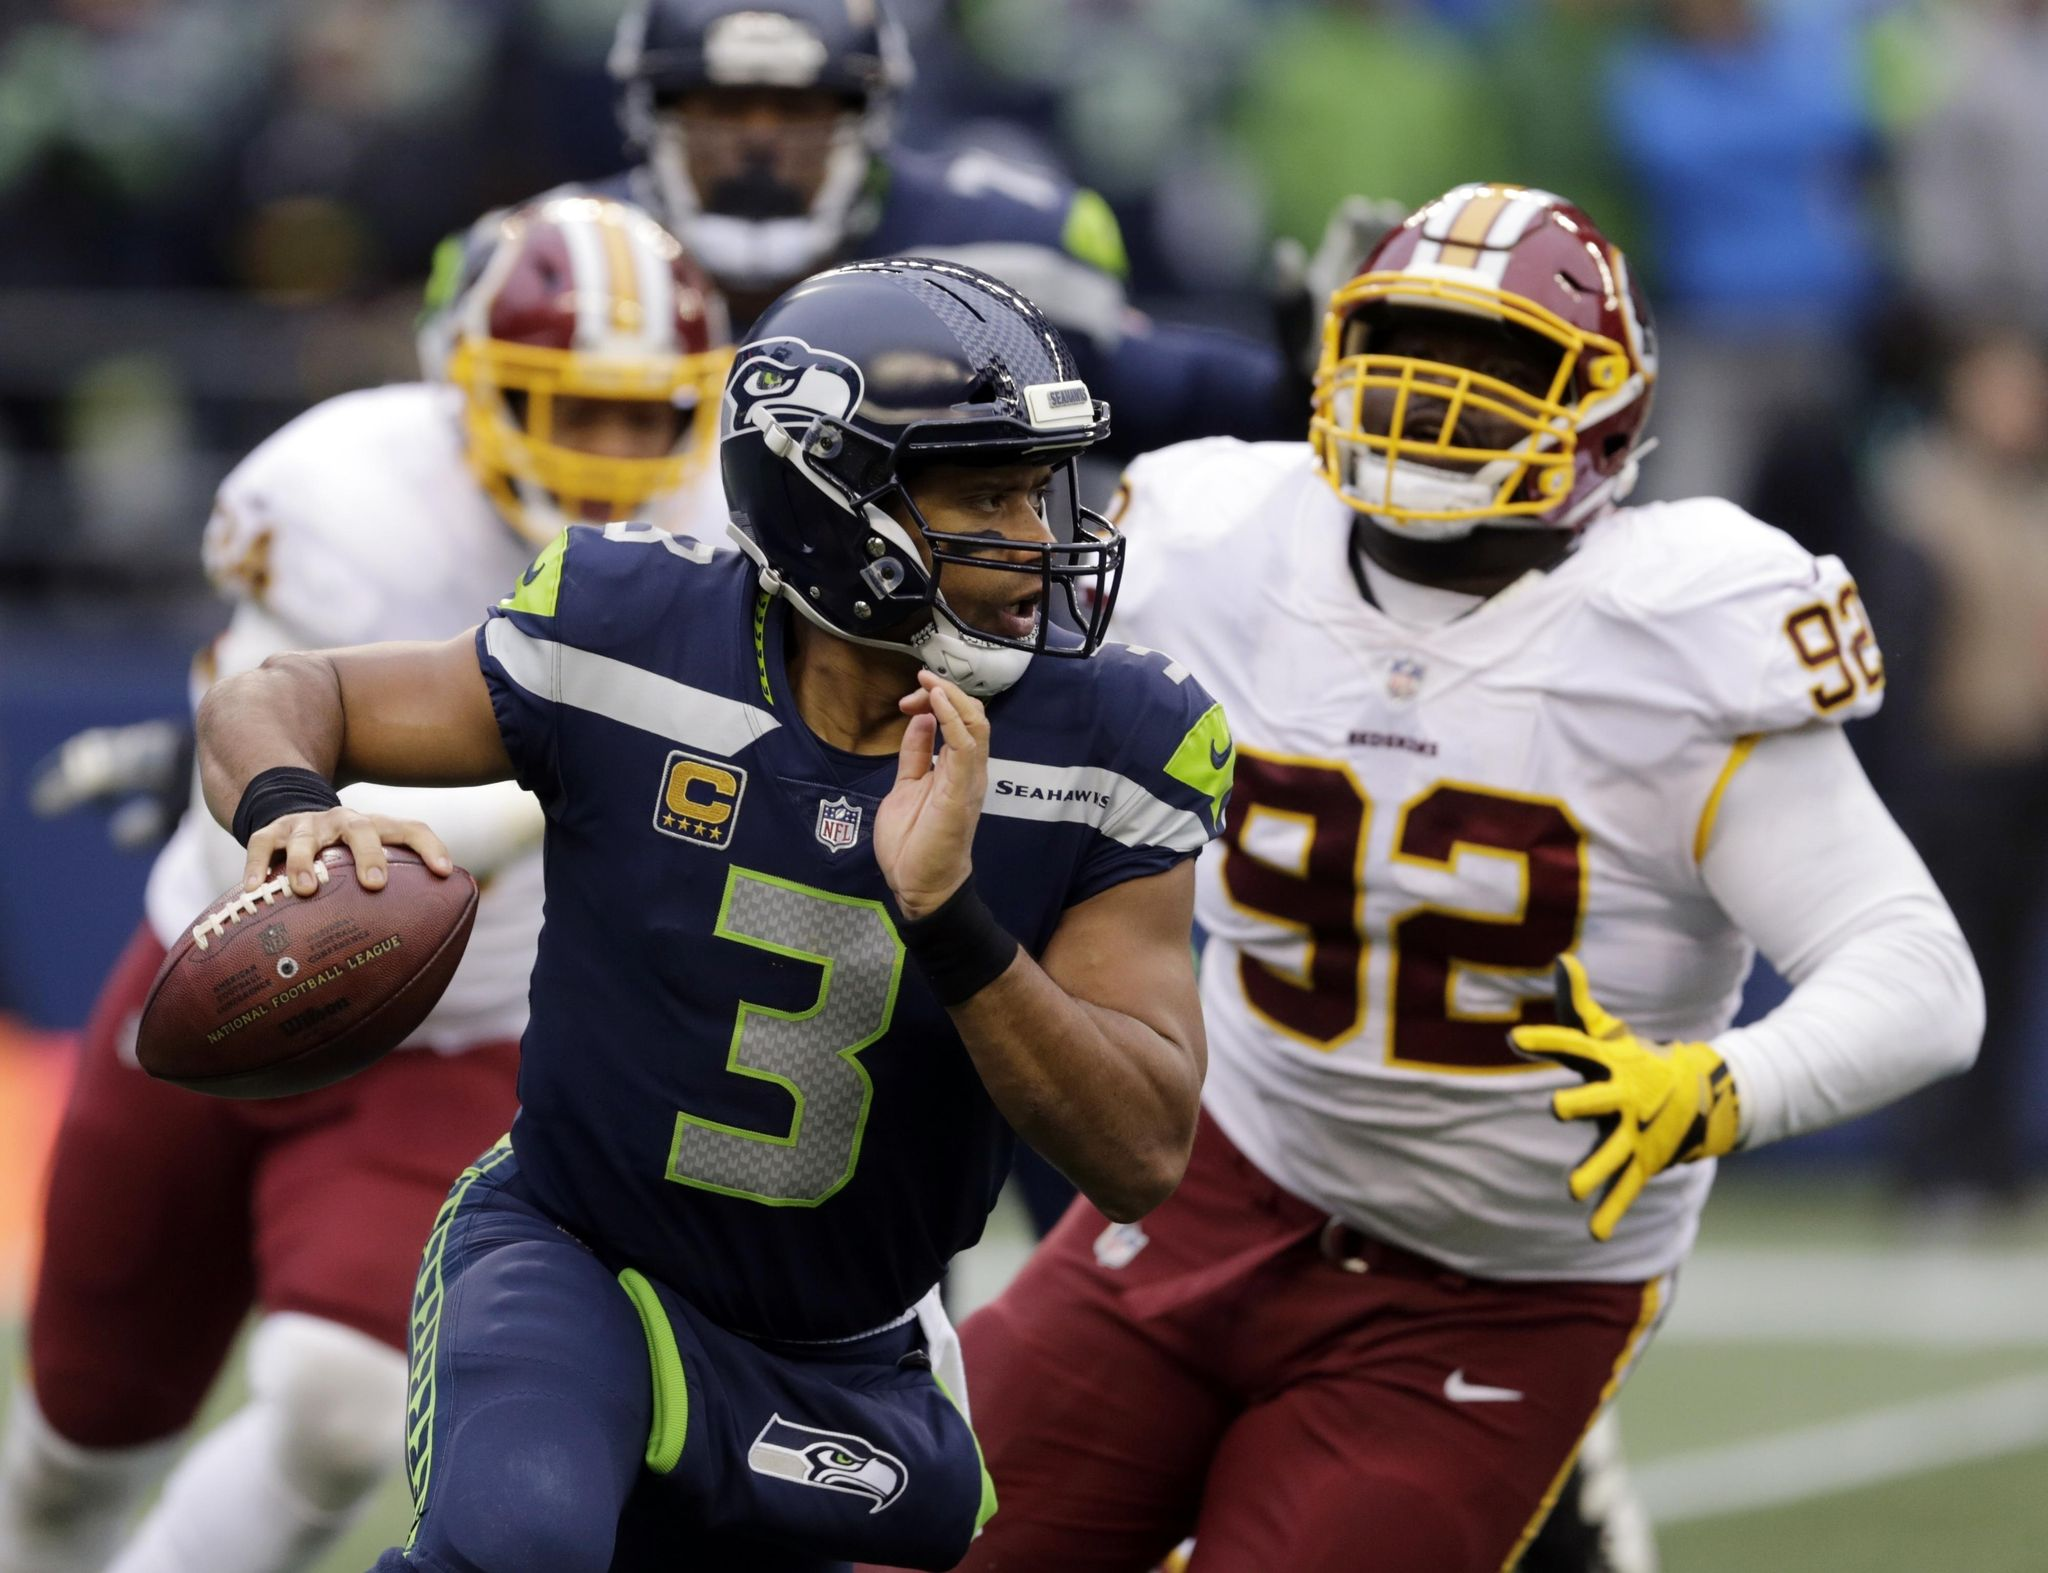 Seahawks_cardinals_football_38903_s2048x1573